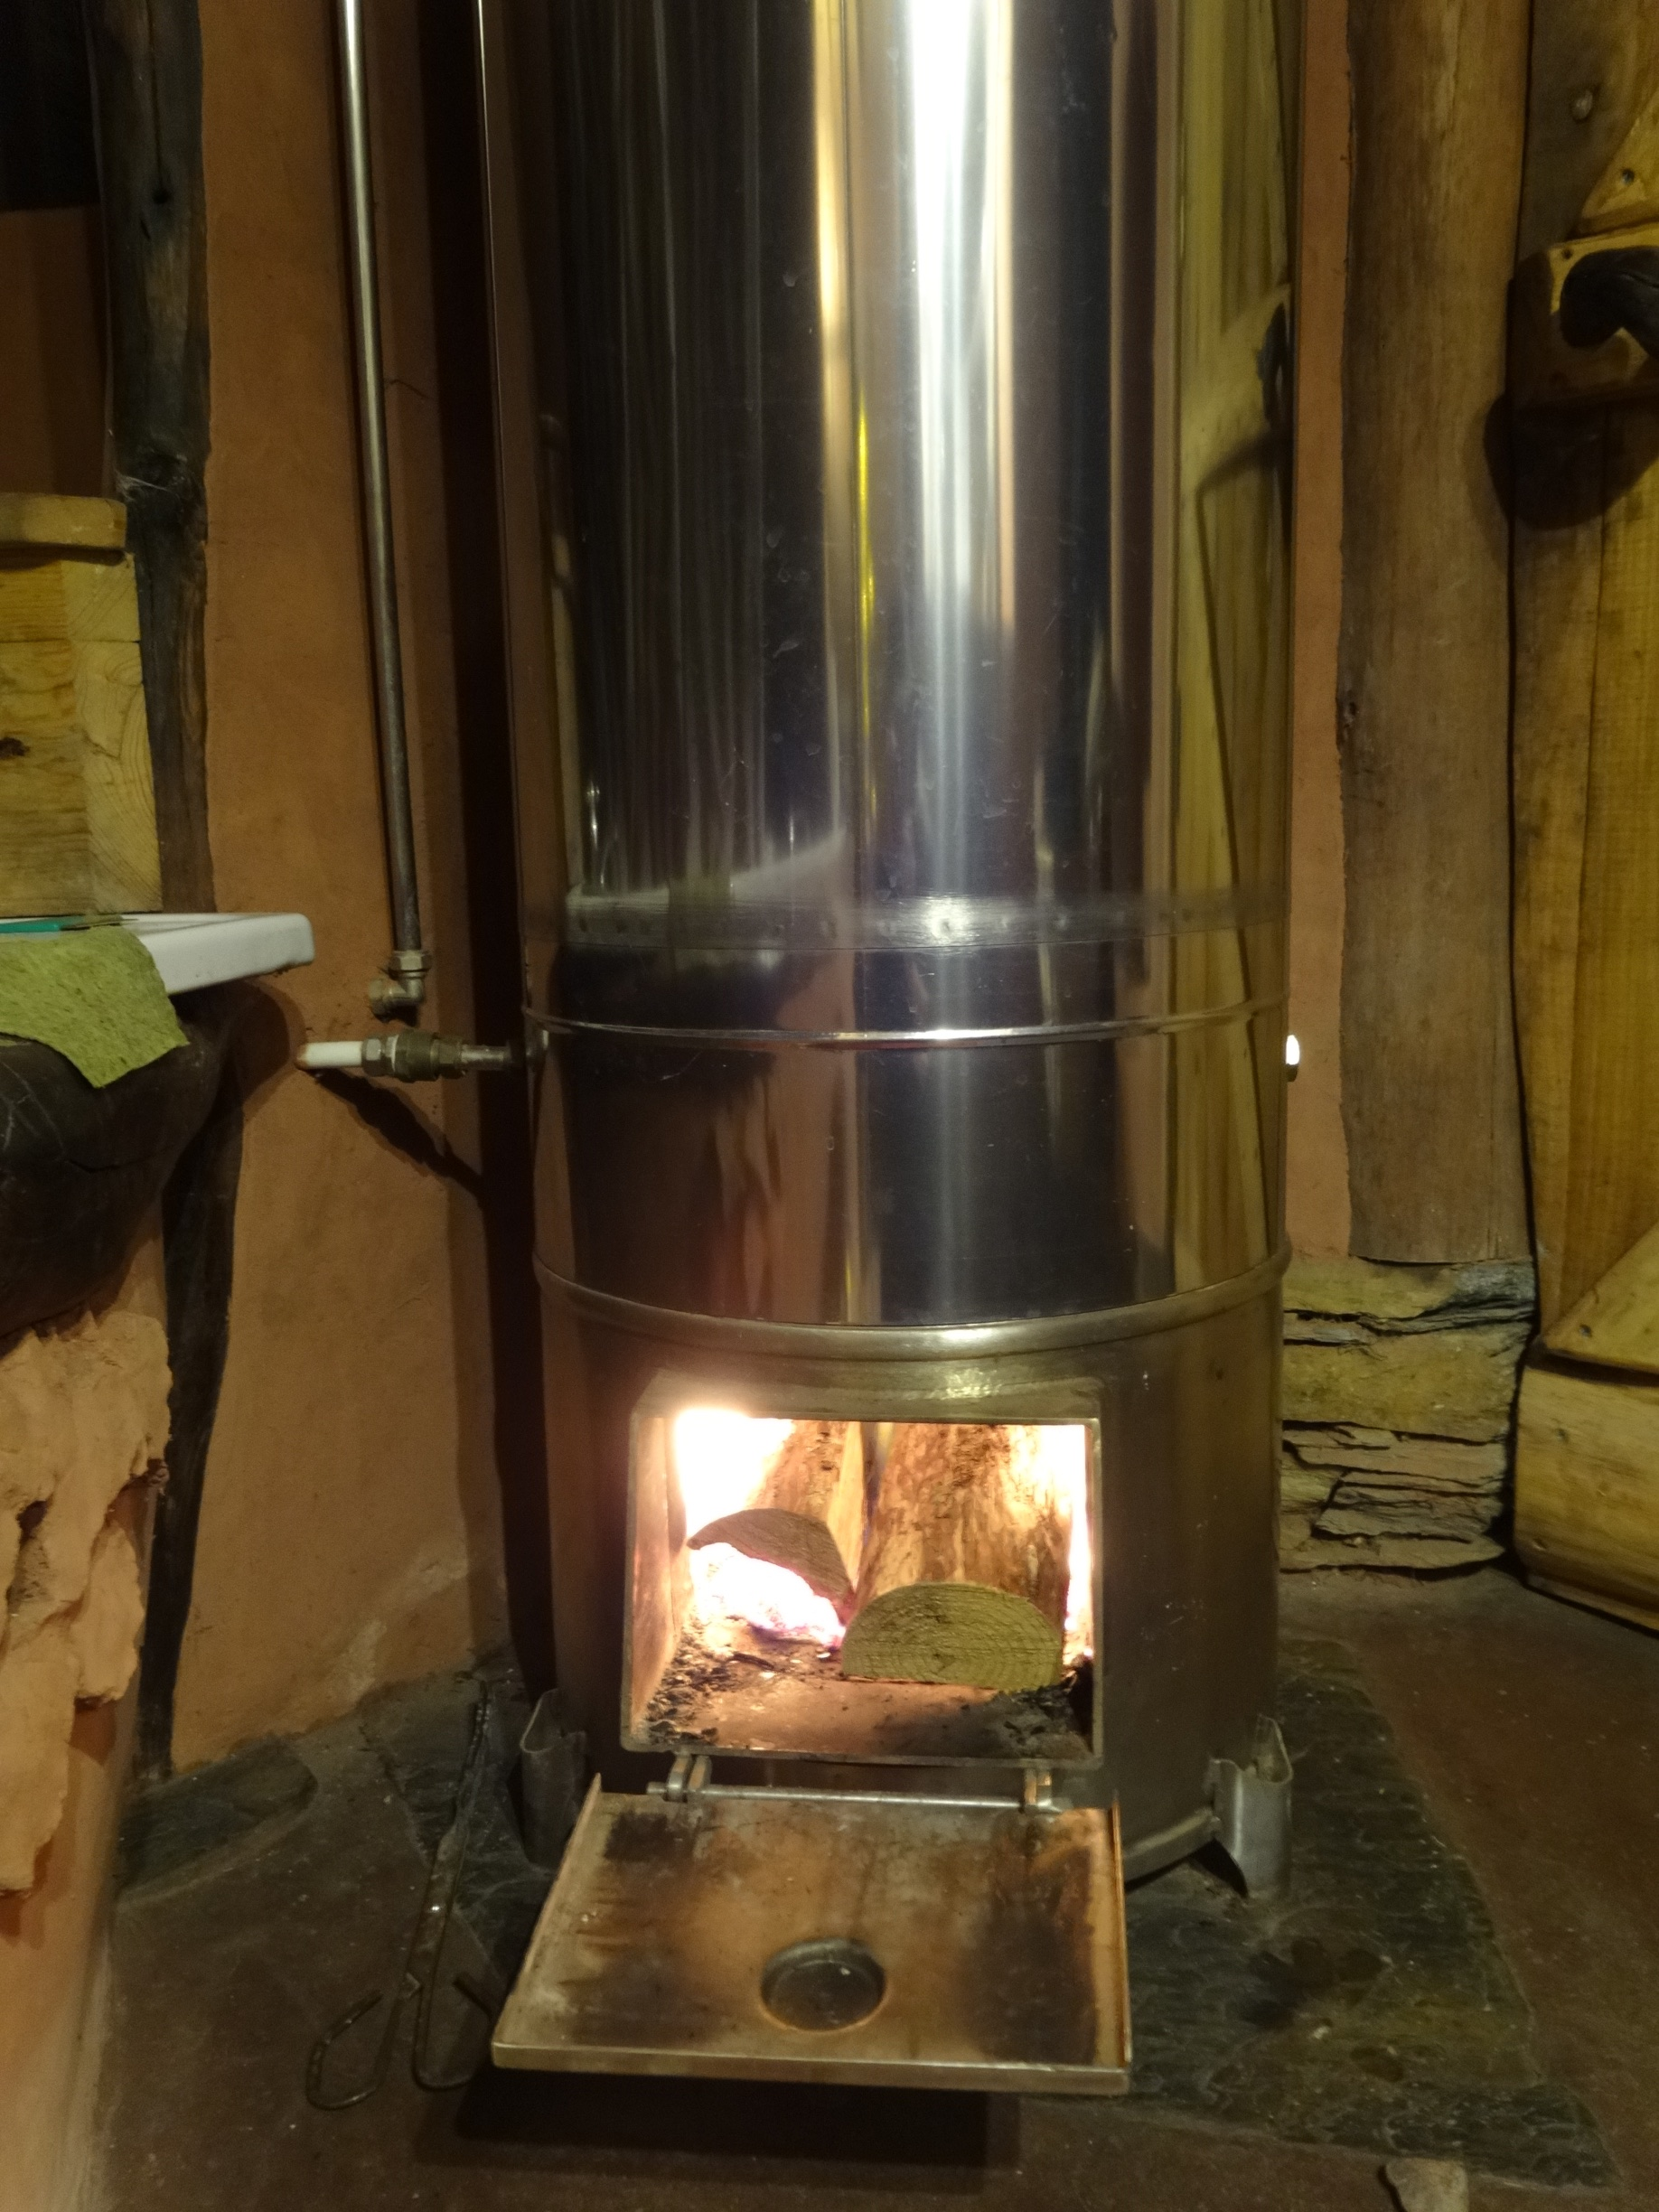 Wood-burning water heater or bailarina